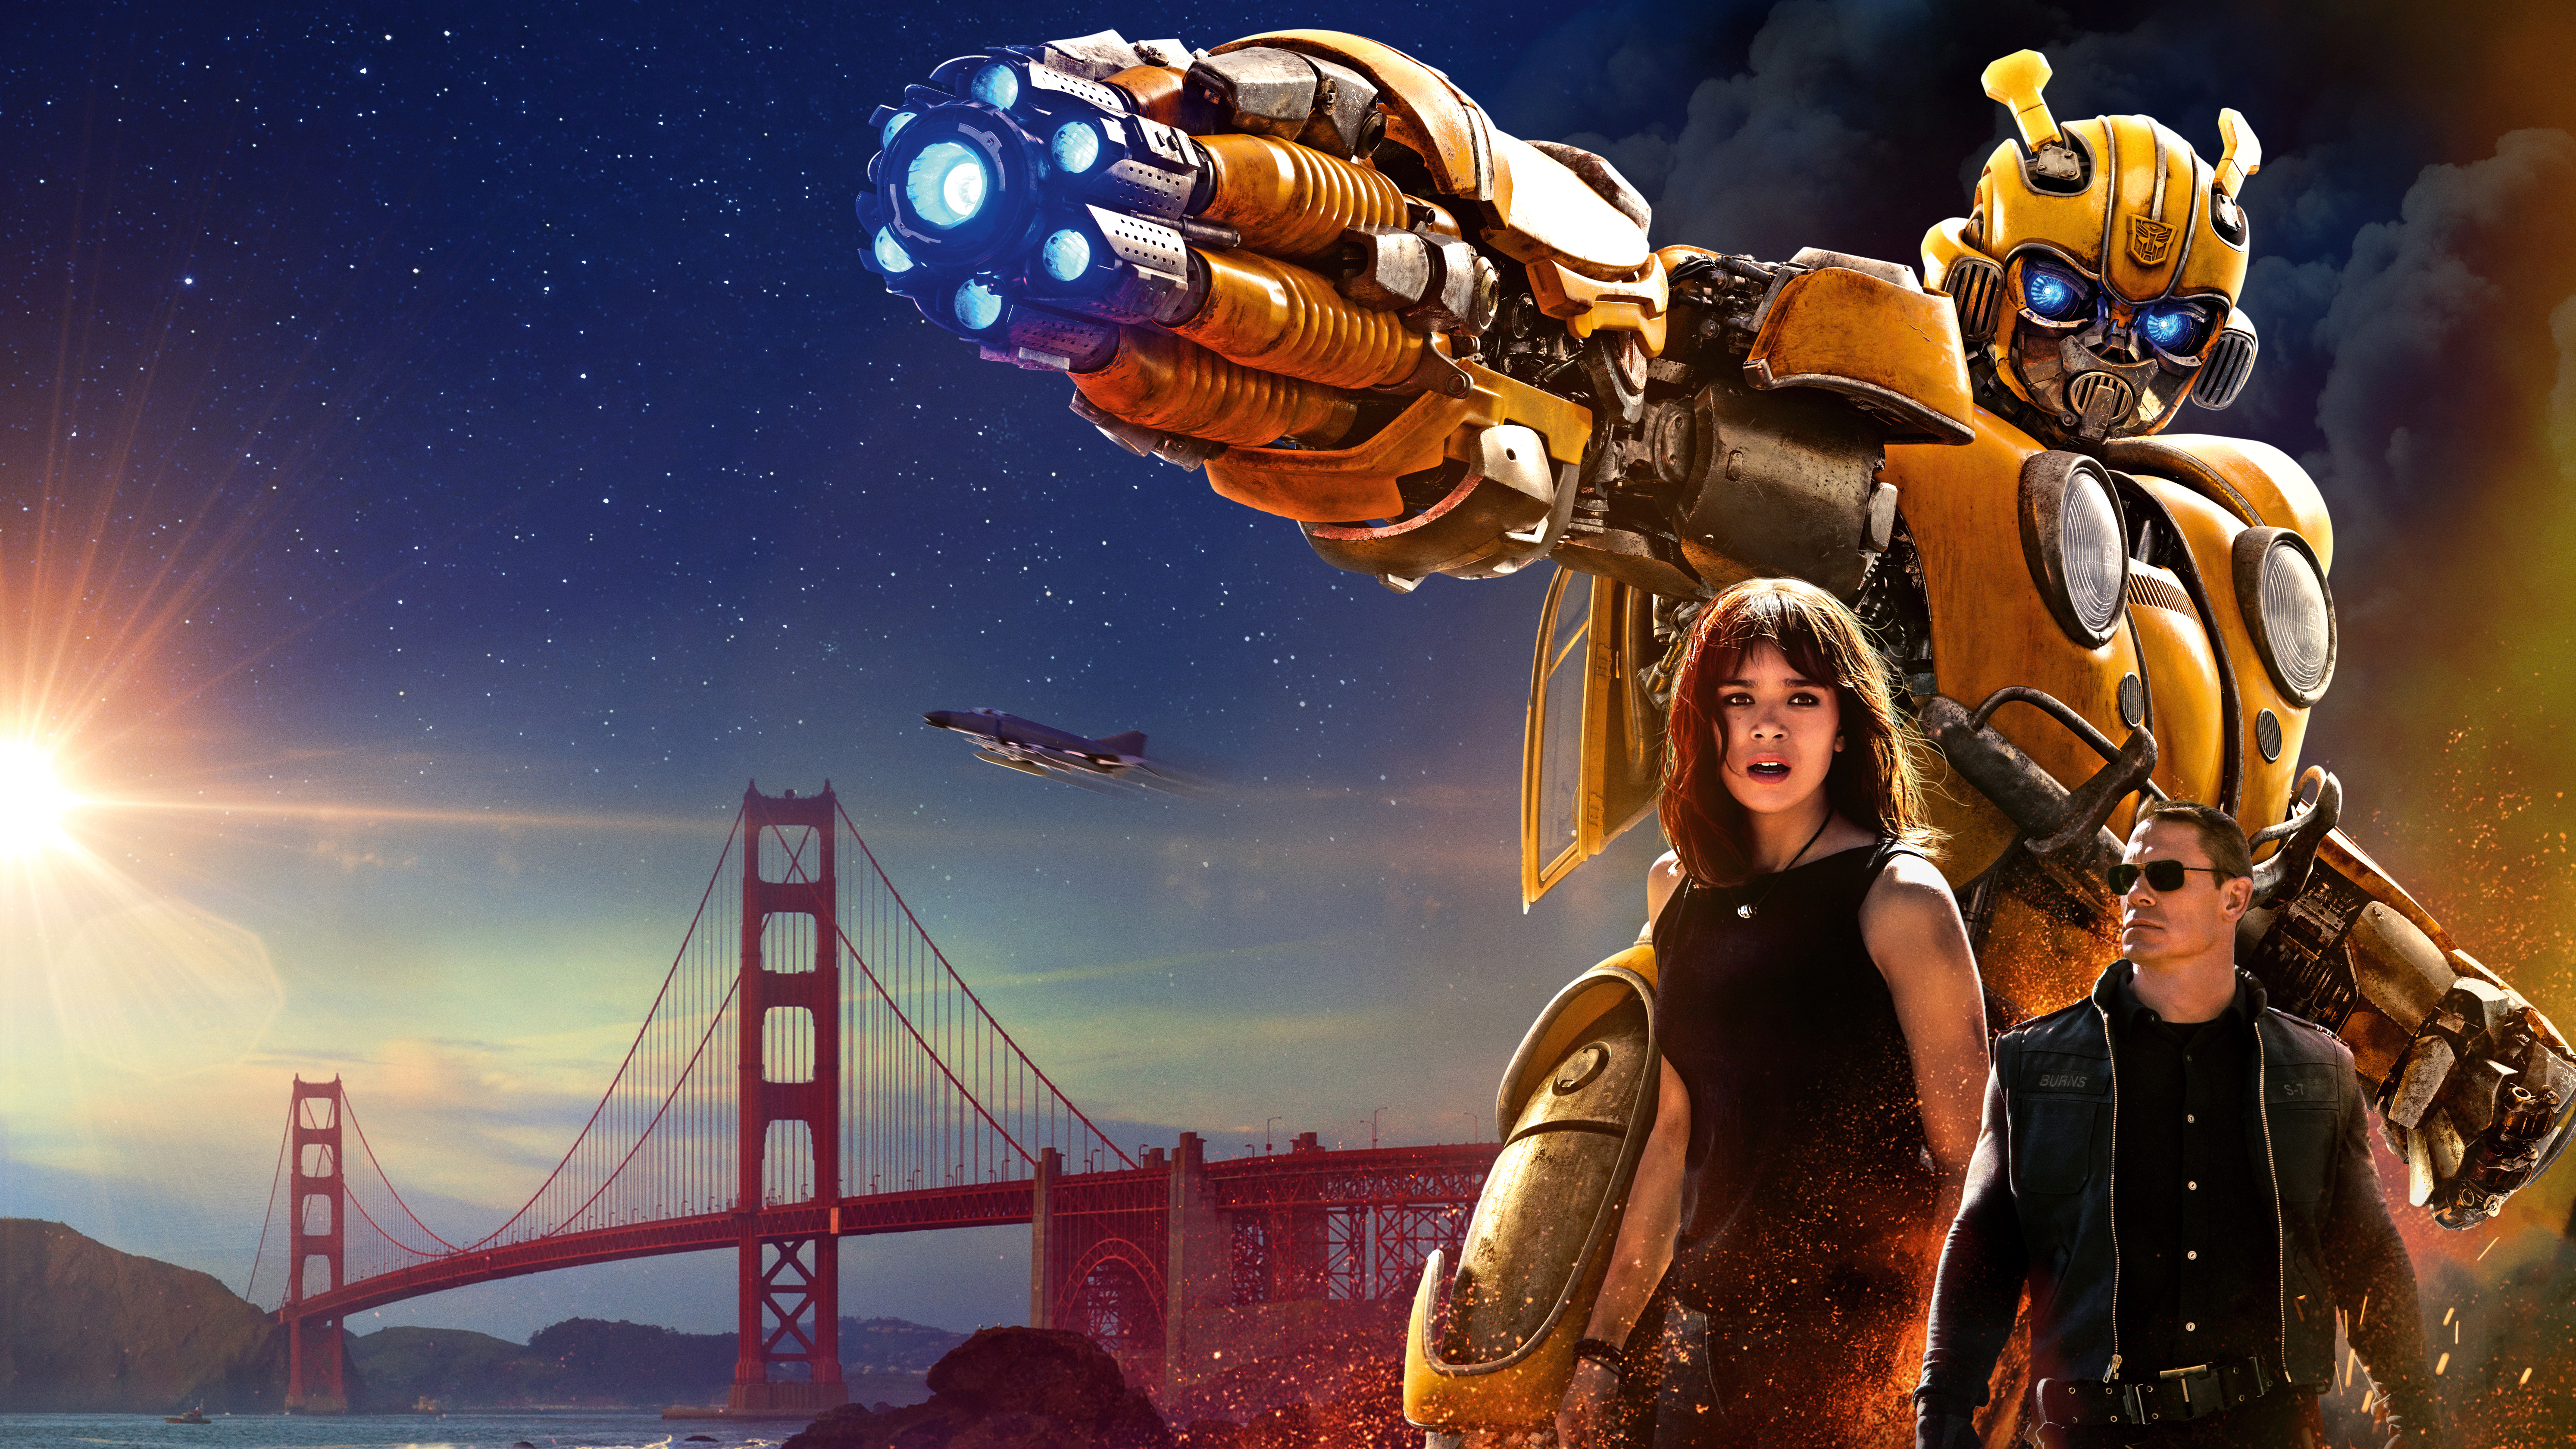 Bumblebee Movie Poster 2018 Hd Movies 4k Wallpapers